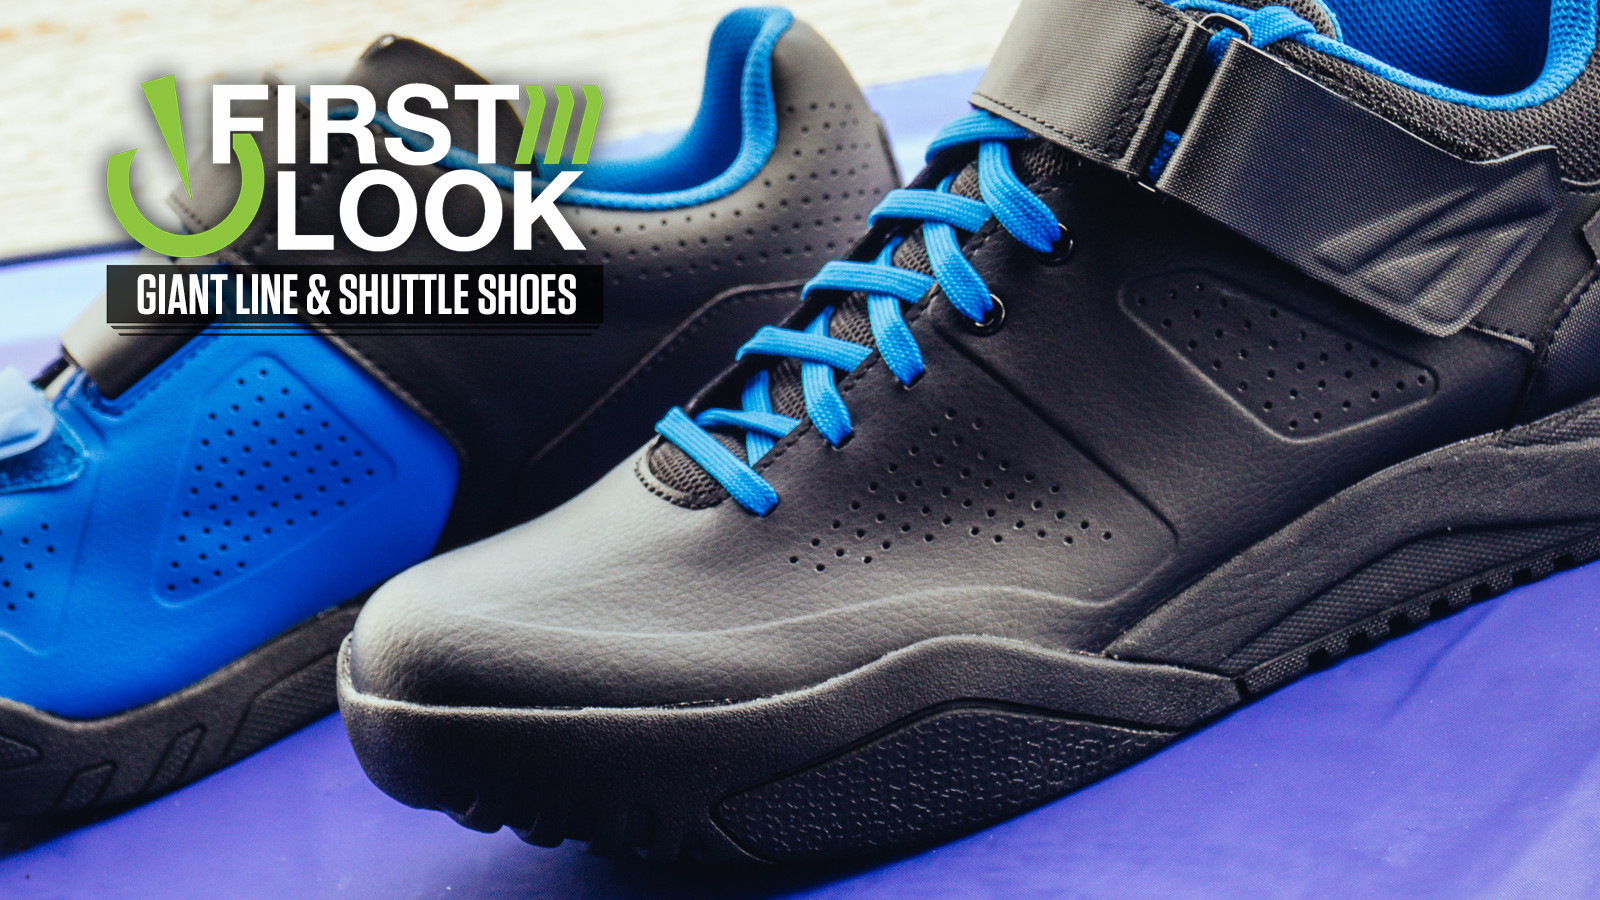 First Look: Giant's New Line and Shuttle Shoes